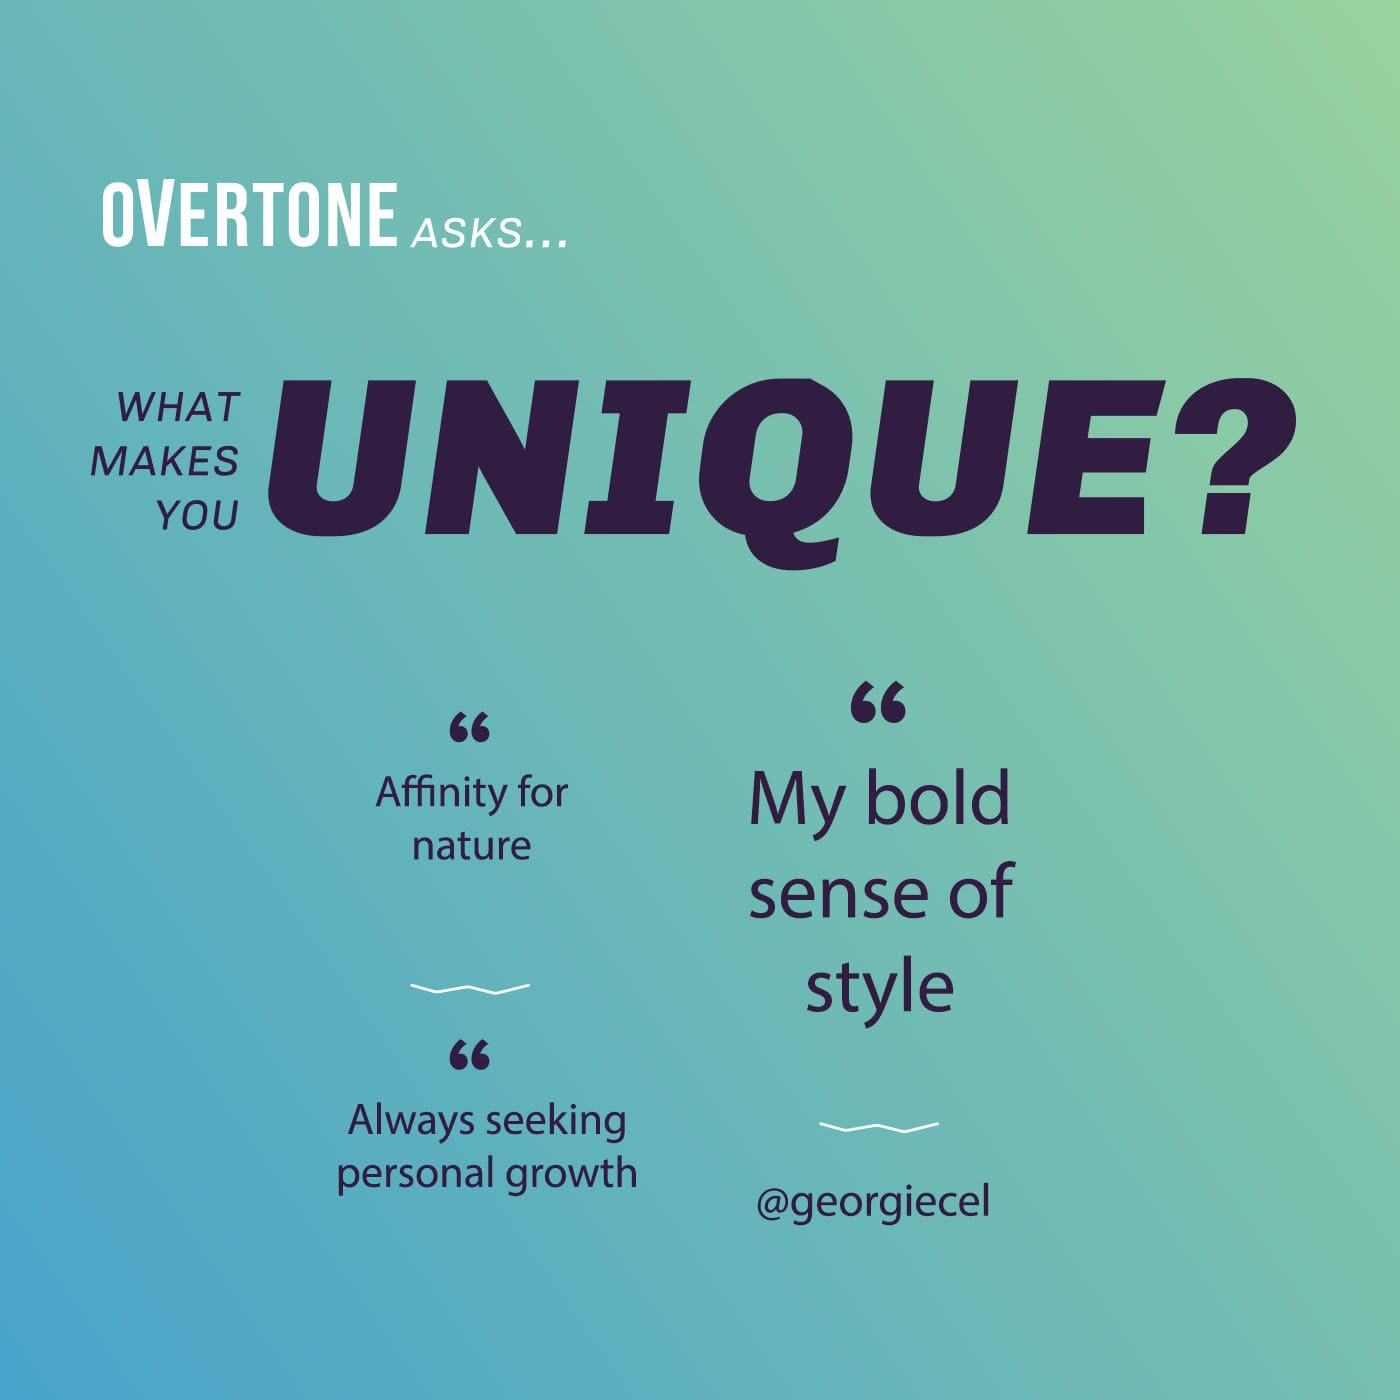 An image with a blue and green gradient; it reads 'Overtone asks... what makes you unique? Affinity for nature / Always seeking personal growth / My bold sense of style / @georgiecel